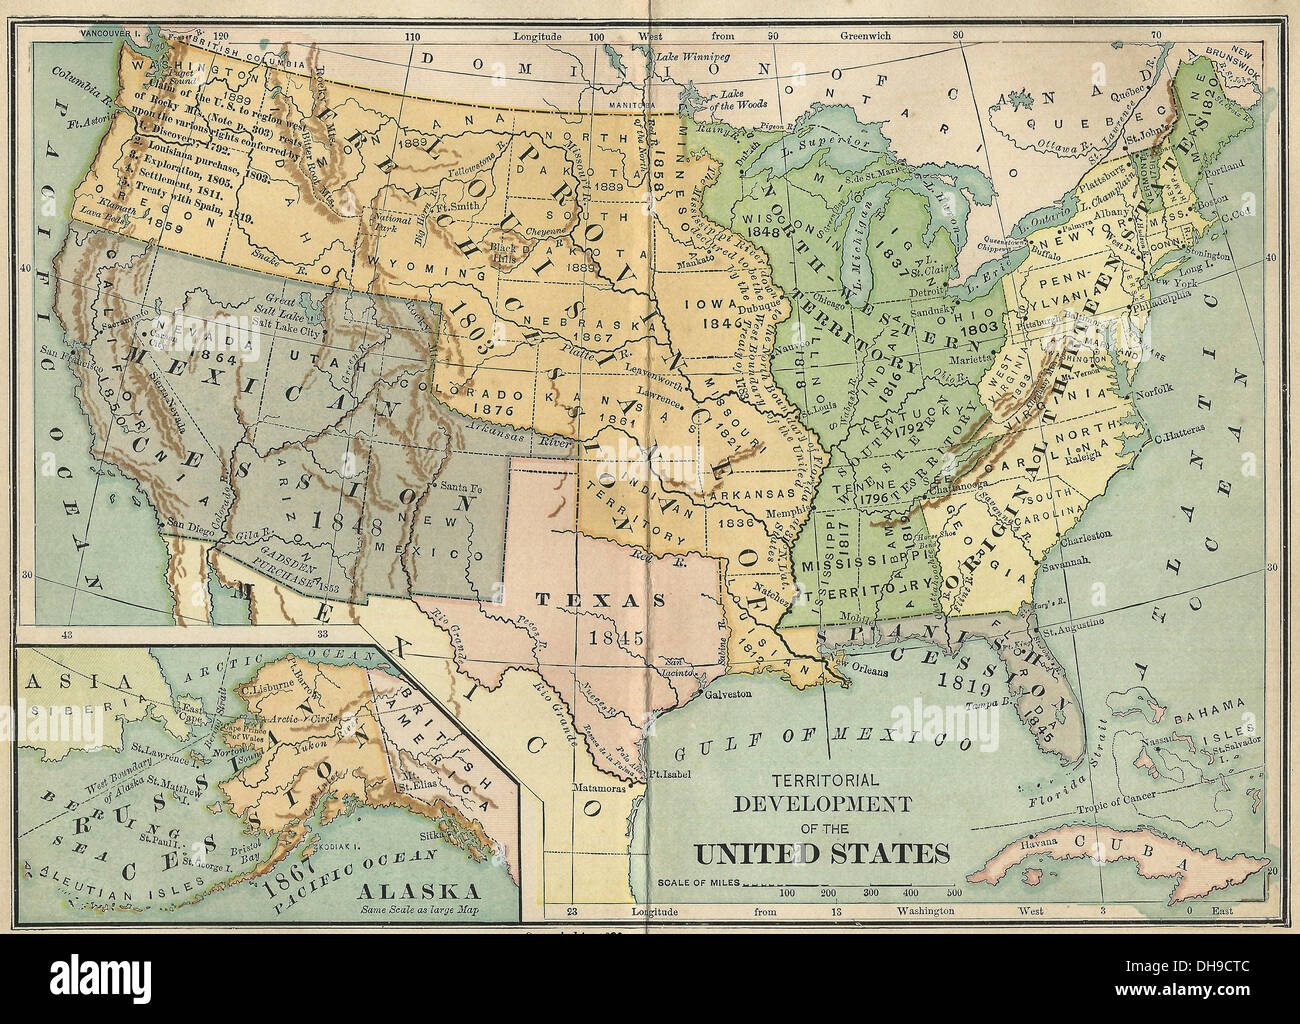 Territorial Development Of The United States America Map Circa - Us map 1890